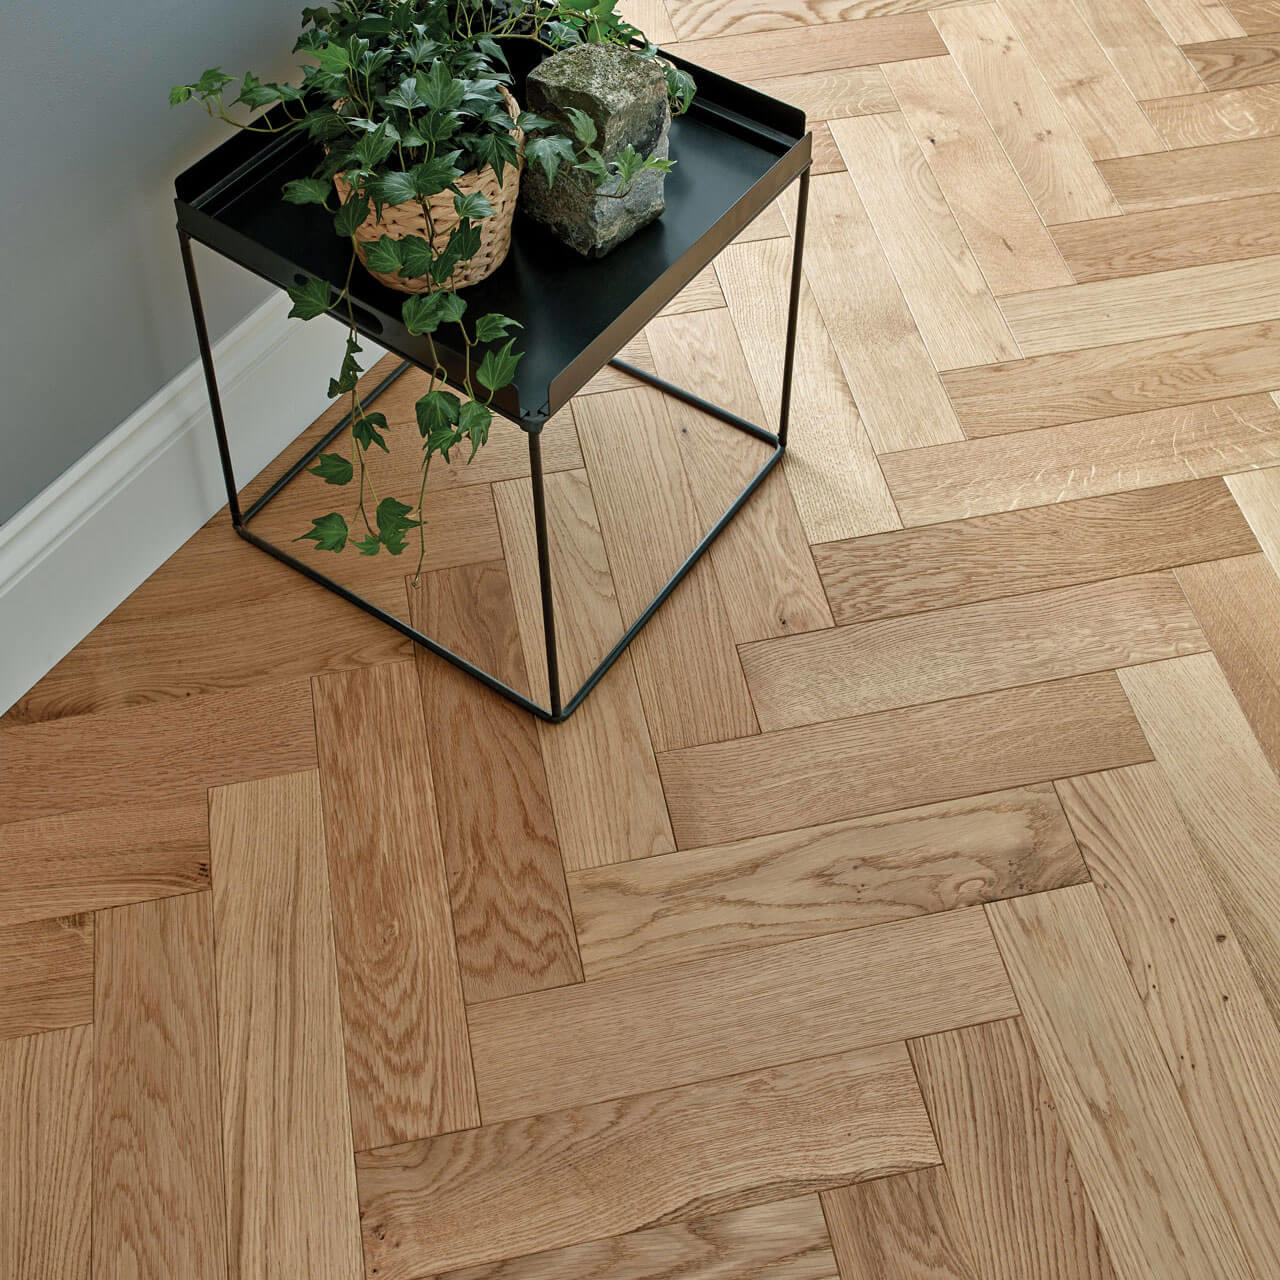 Woodpecker Goodrich Herringbone Natural Oak Brushed & Matt Lacquered Engineered Wood Flooring 32-GNA-001